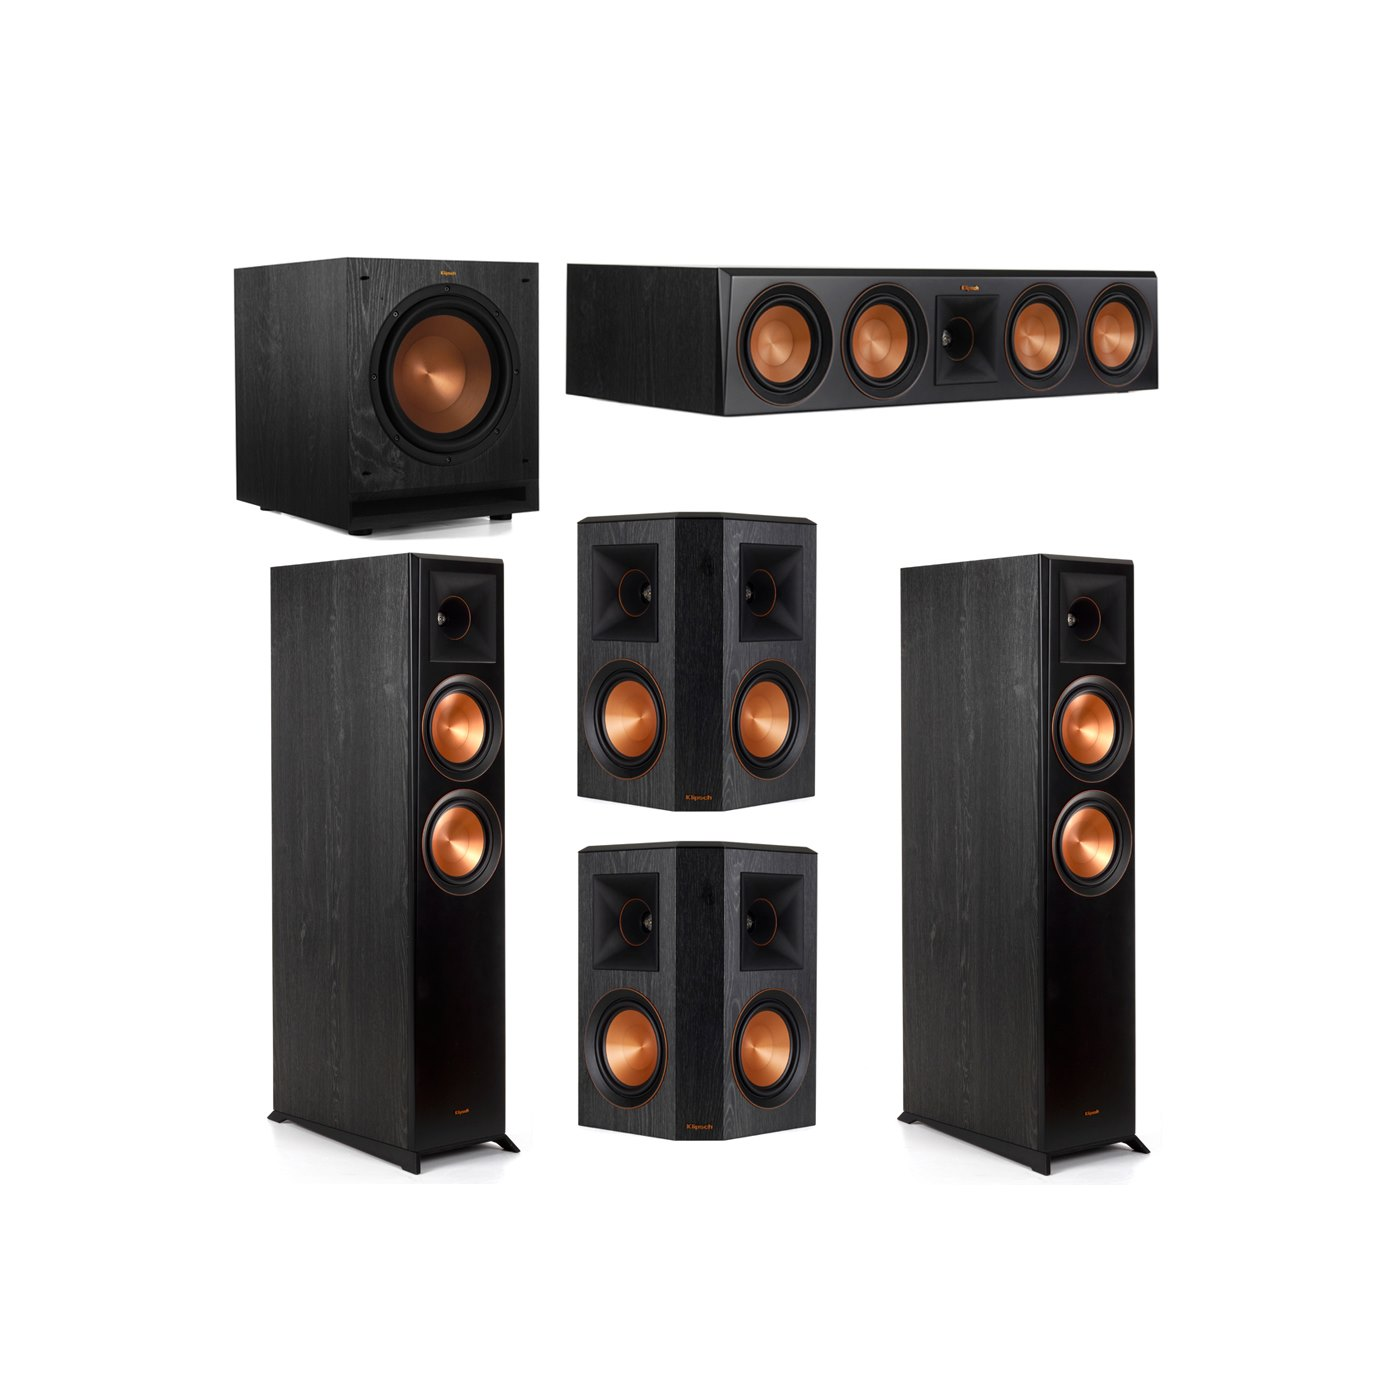 Klipsch 5.1 System with 2 RP-6000F Floorstanding Speakers, 1 Klipsch RP-504C Center Speaker, 2 Klipsch RP-502S Surround Speakers, 1 Klipsch SPL-100 Subwoofer